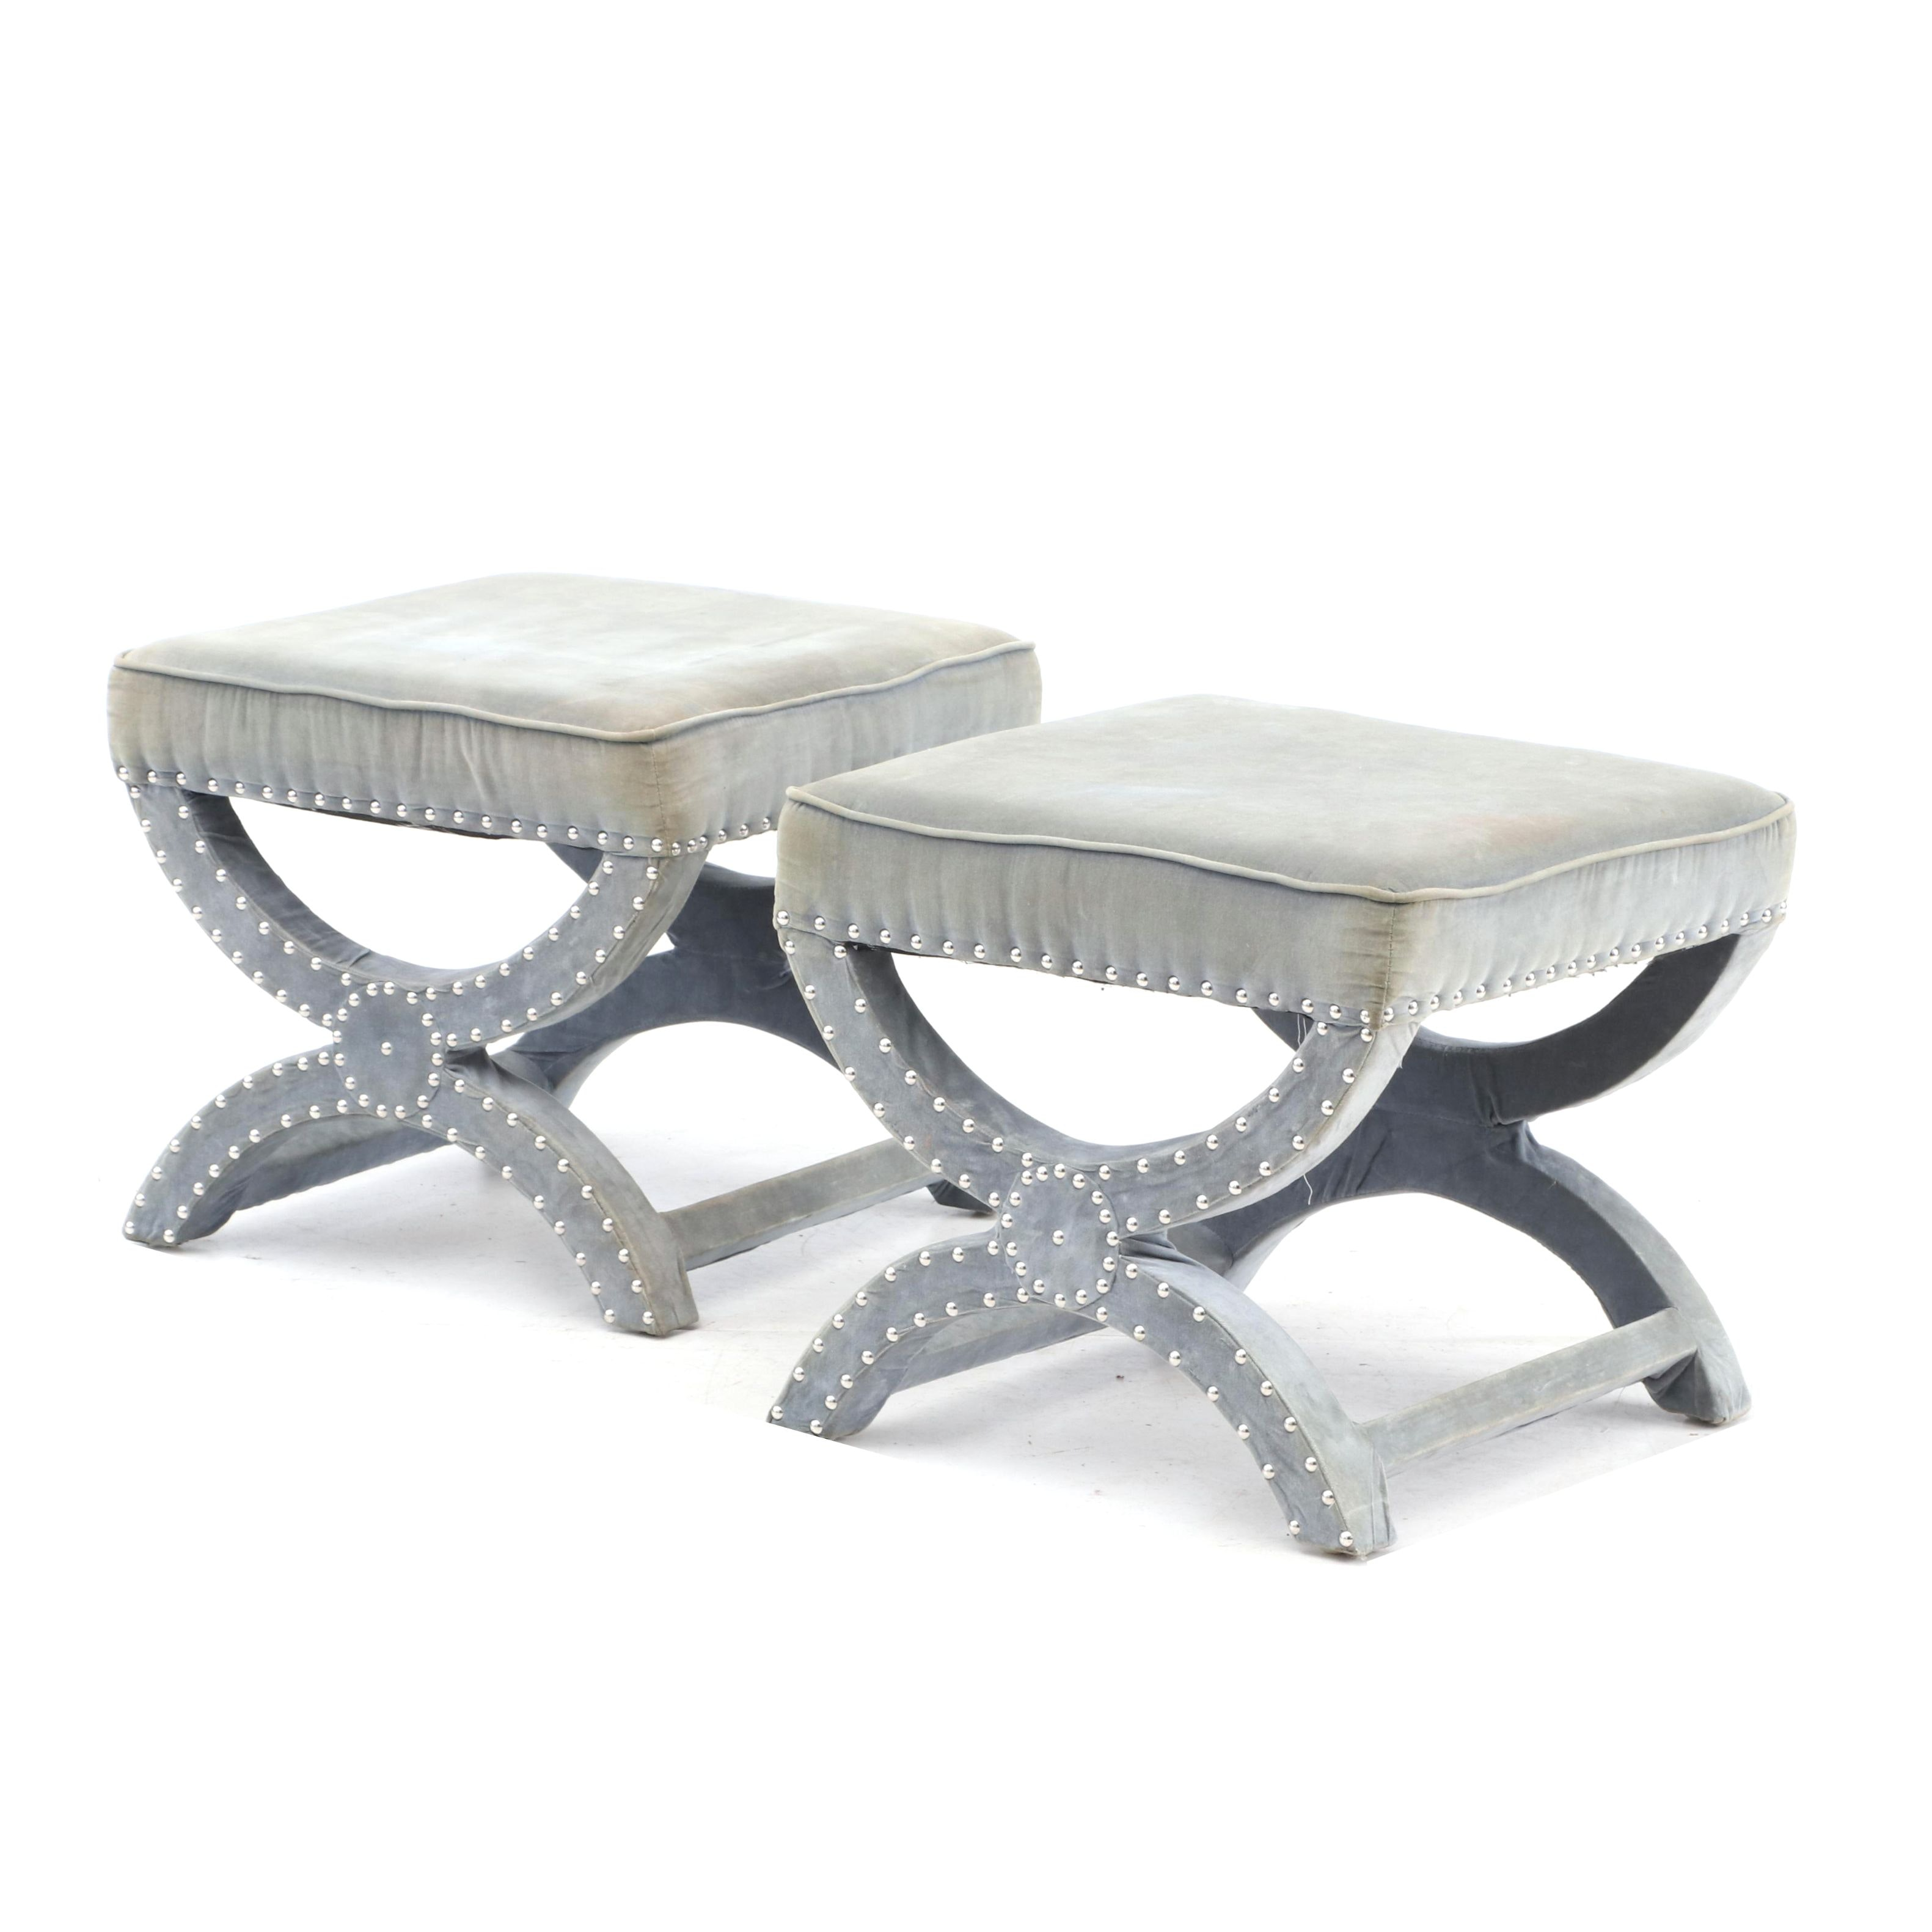 Contemporary Upholstered Curule Stools by Safavieh